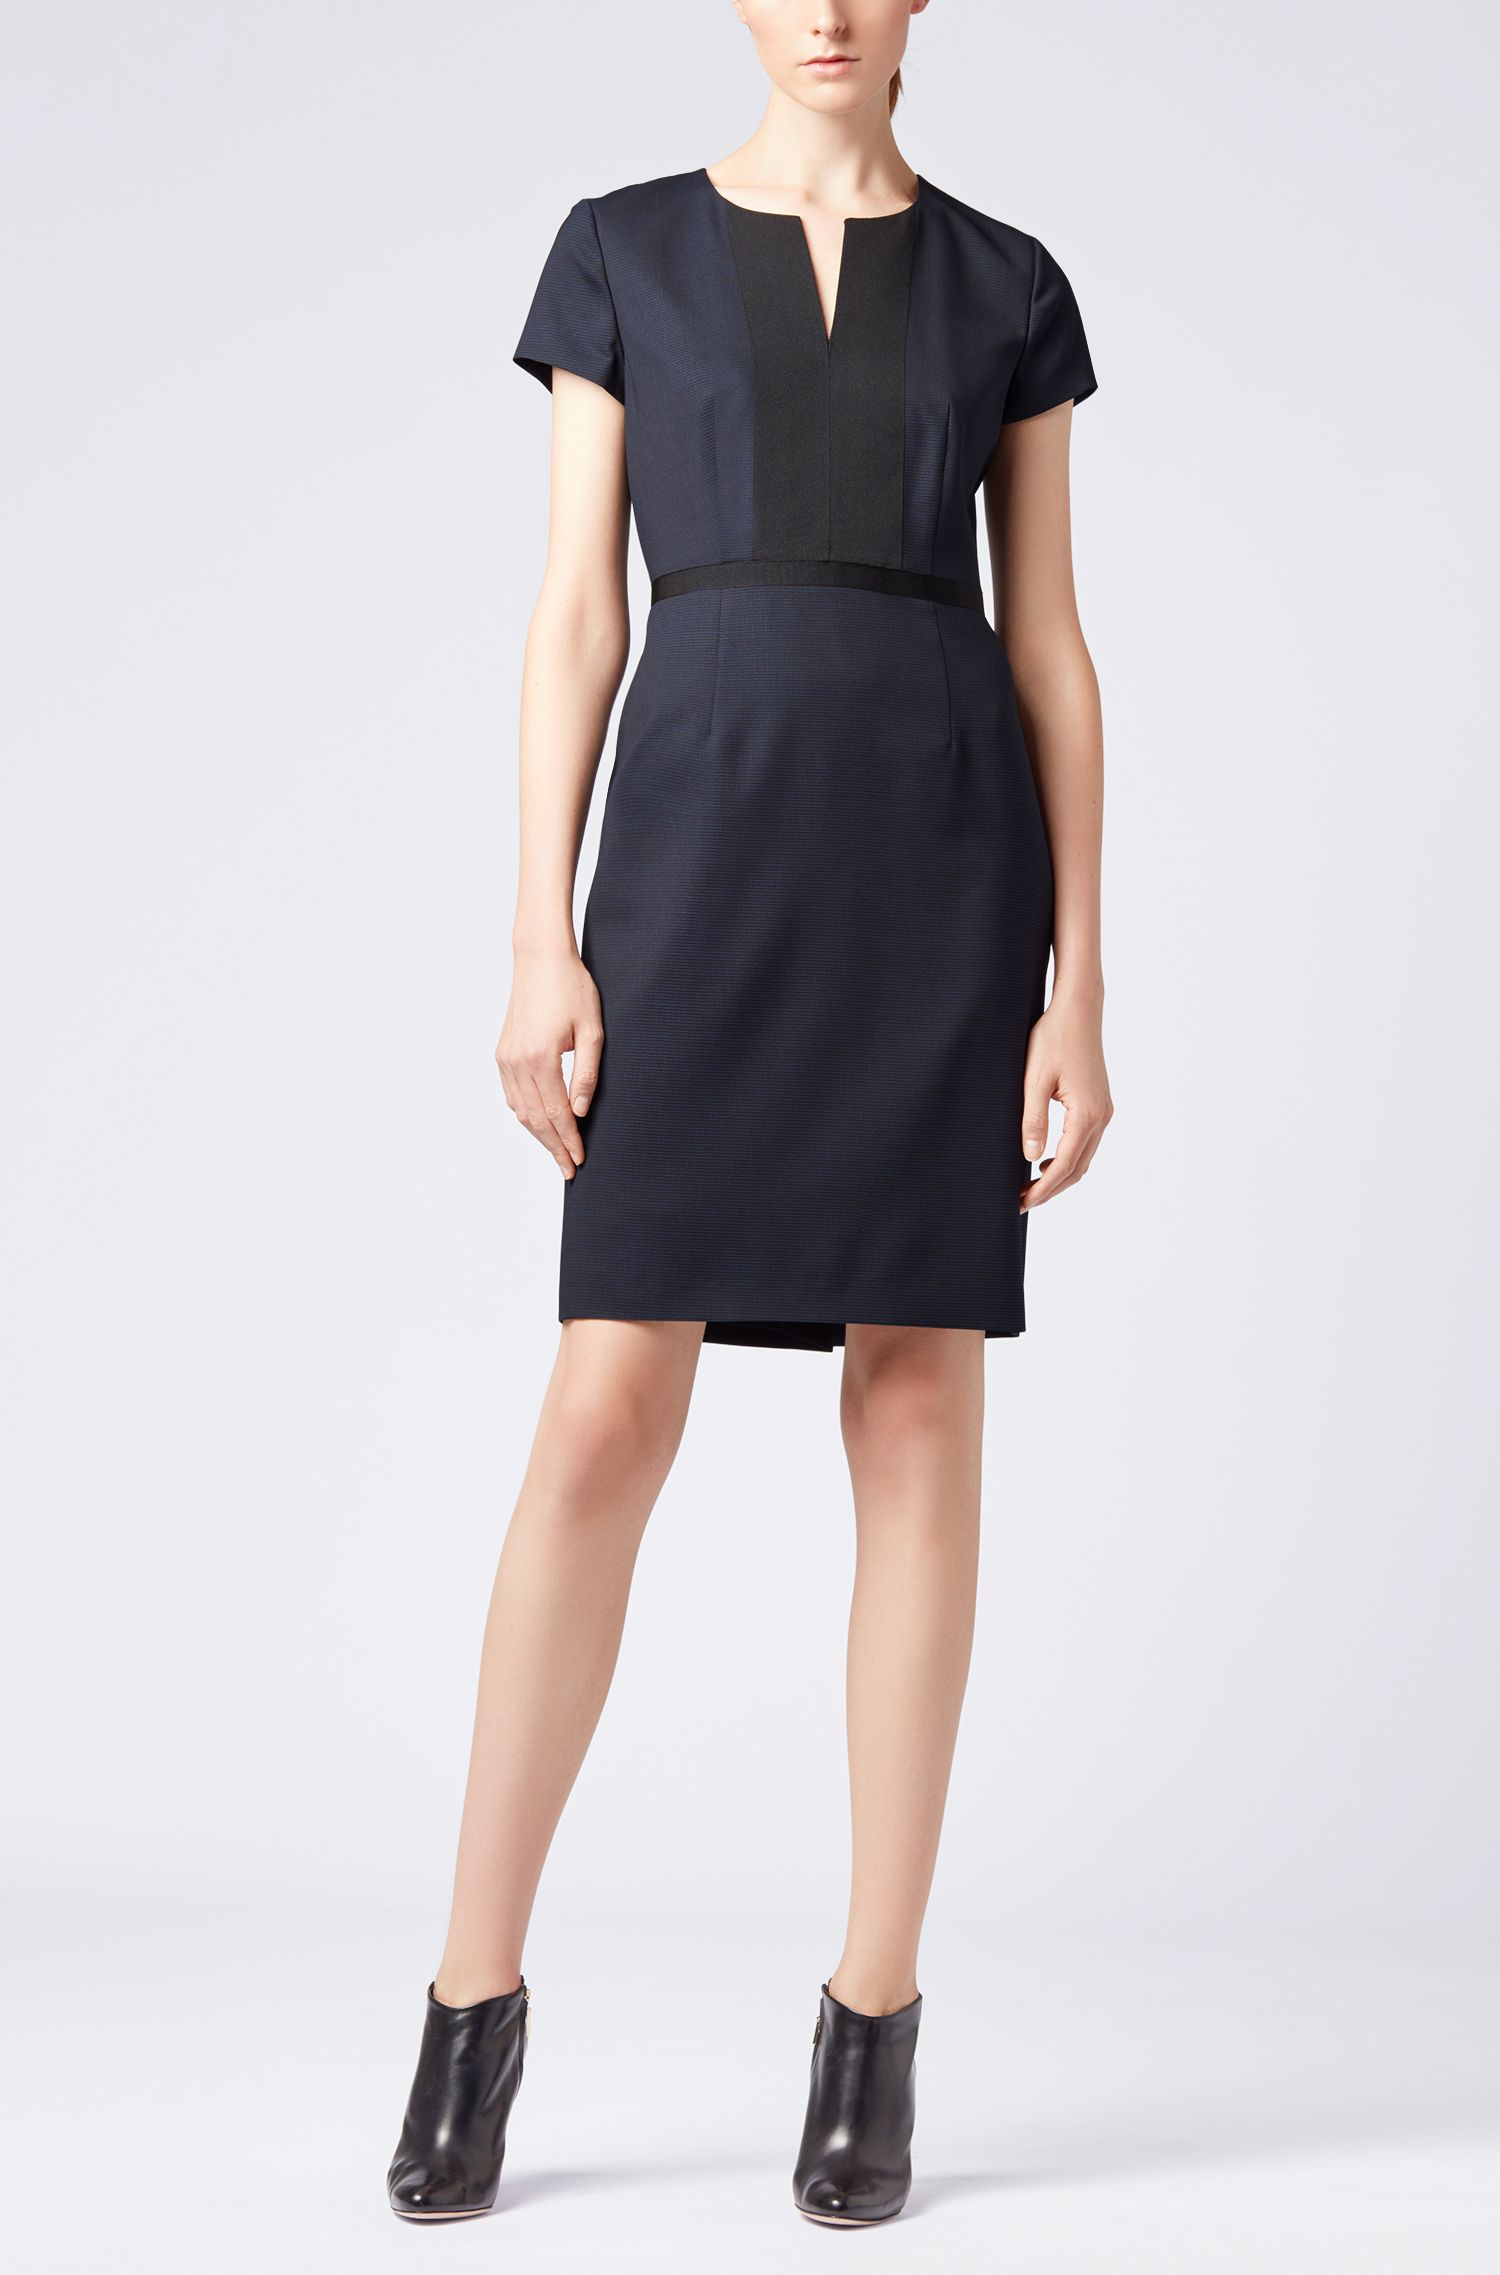 Hugo Boss - Shift dress in Italian stretch wool with notch neckline - 2